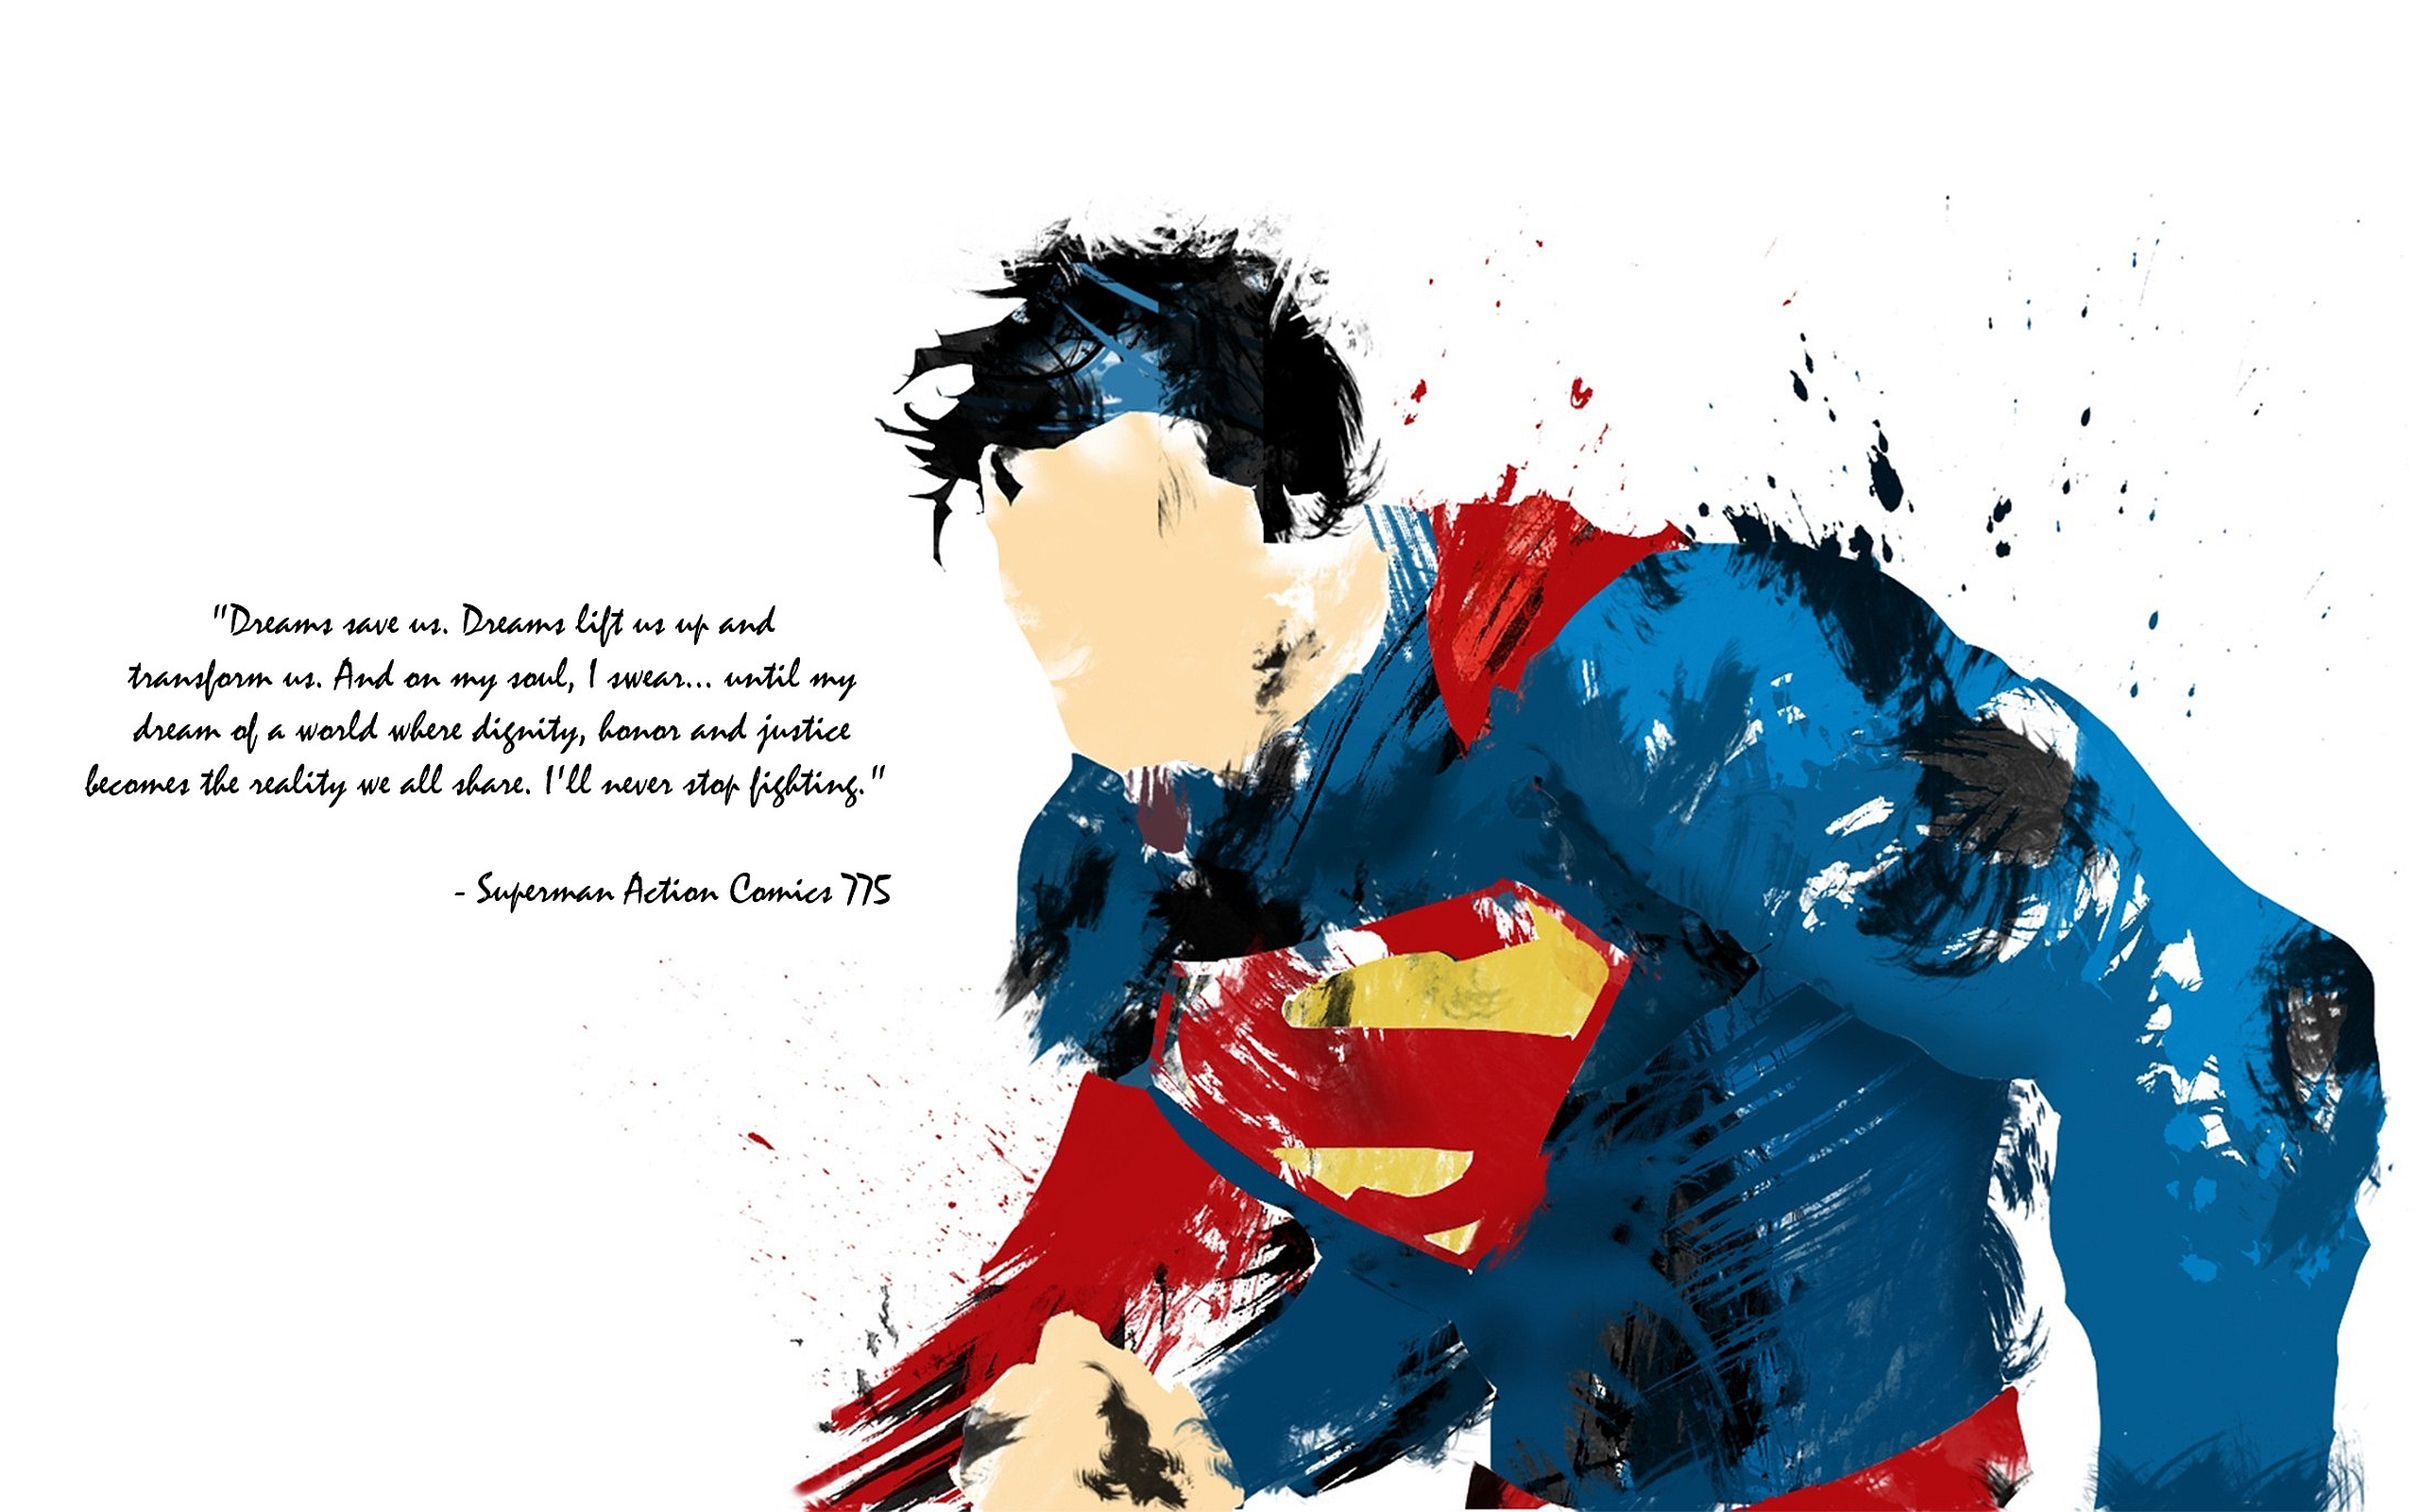 nerdy awesome superman wallpaper - photo #4